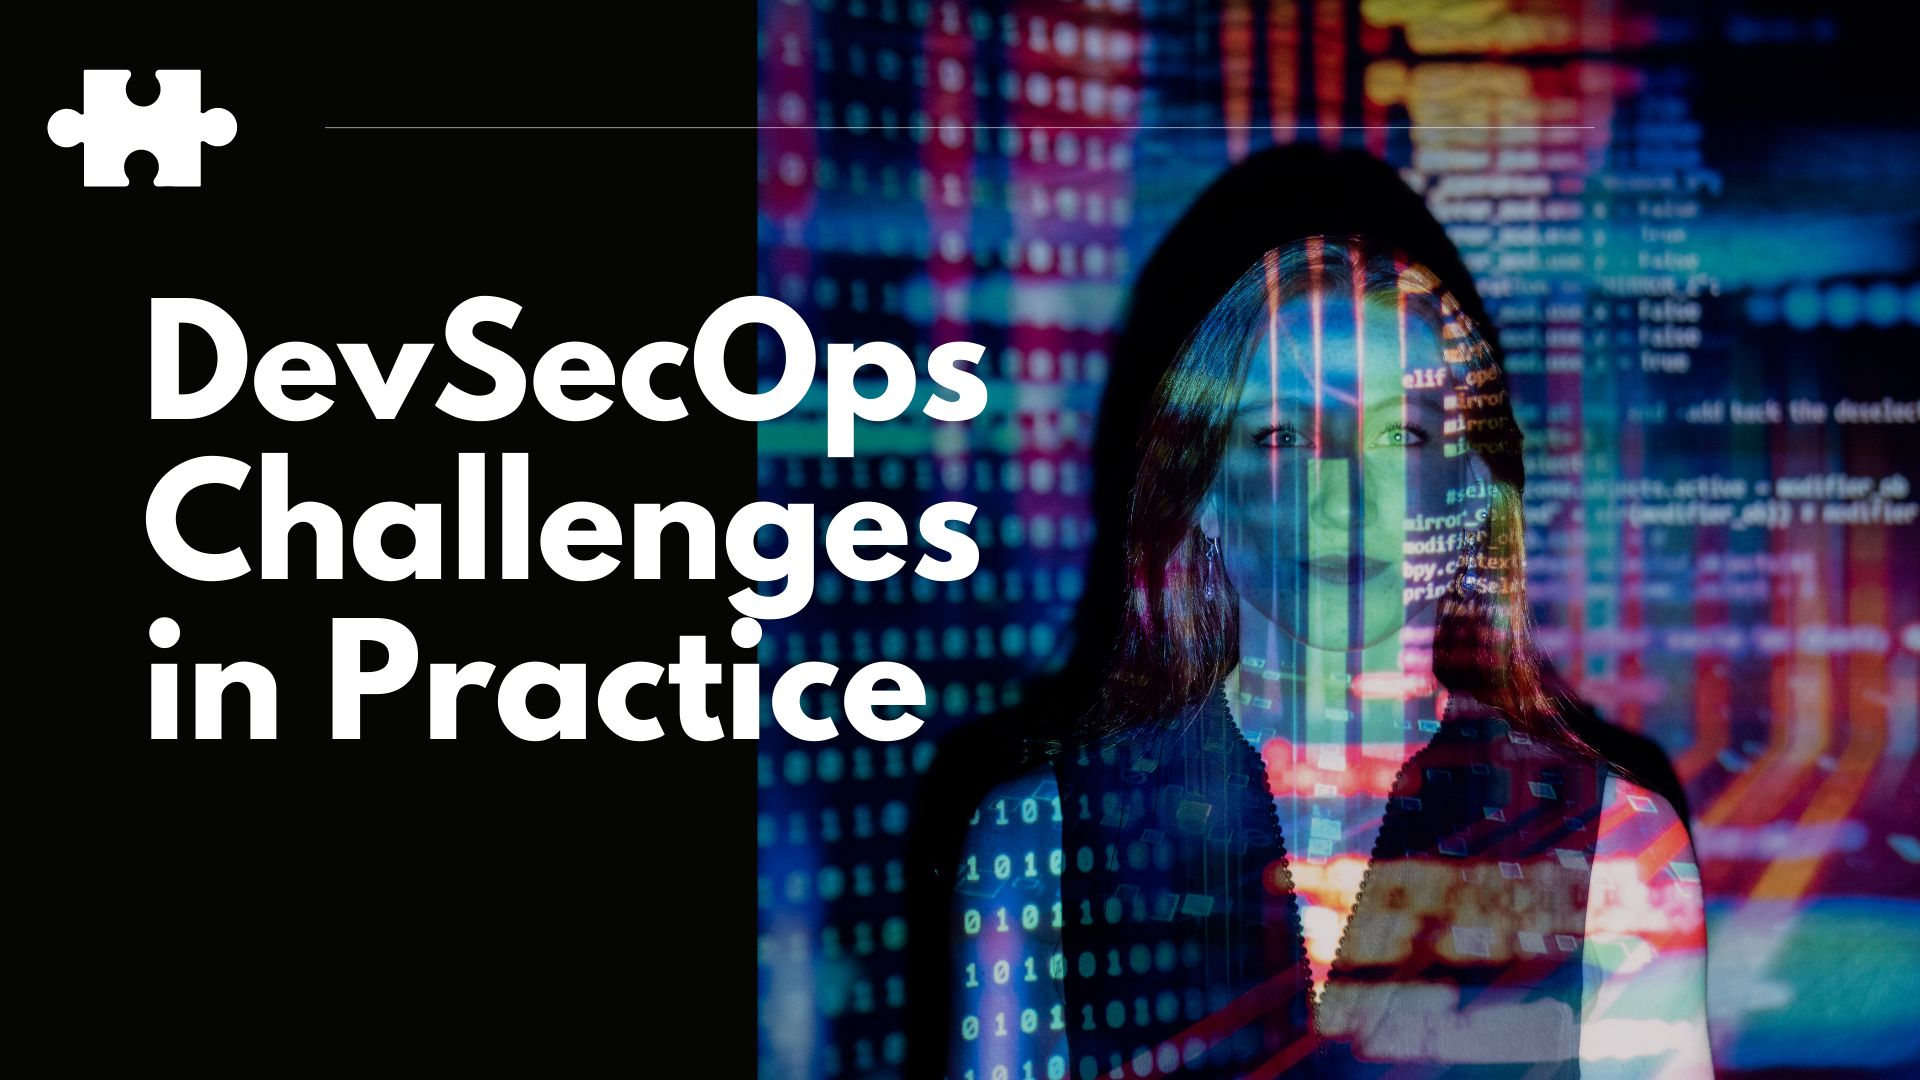 /leading-cisos-and-devops-teams-are-leveraging-devsecops-xv8t355w feature image